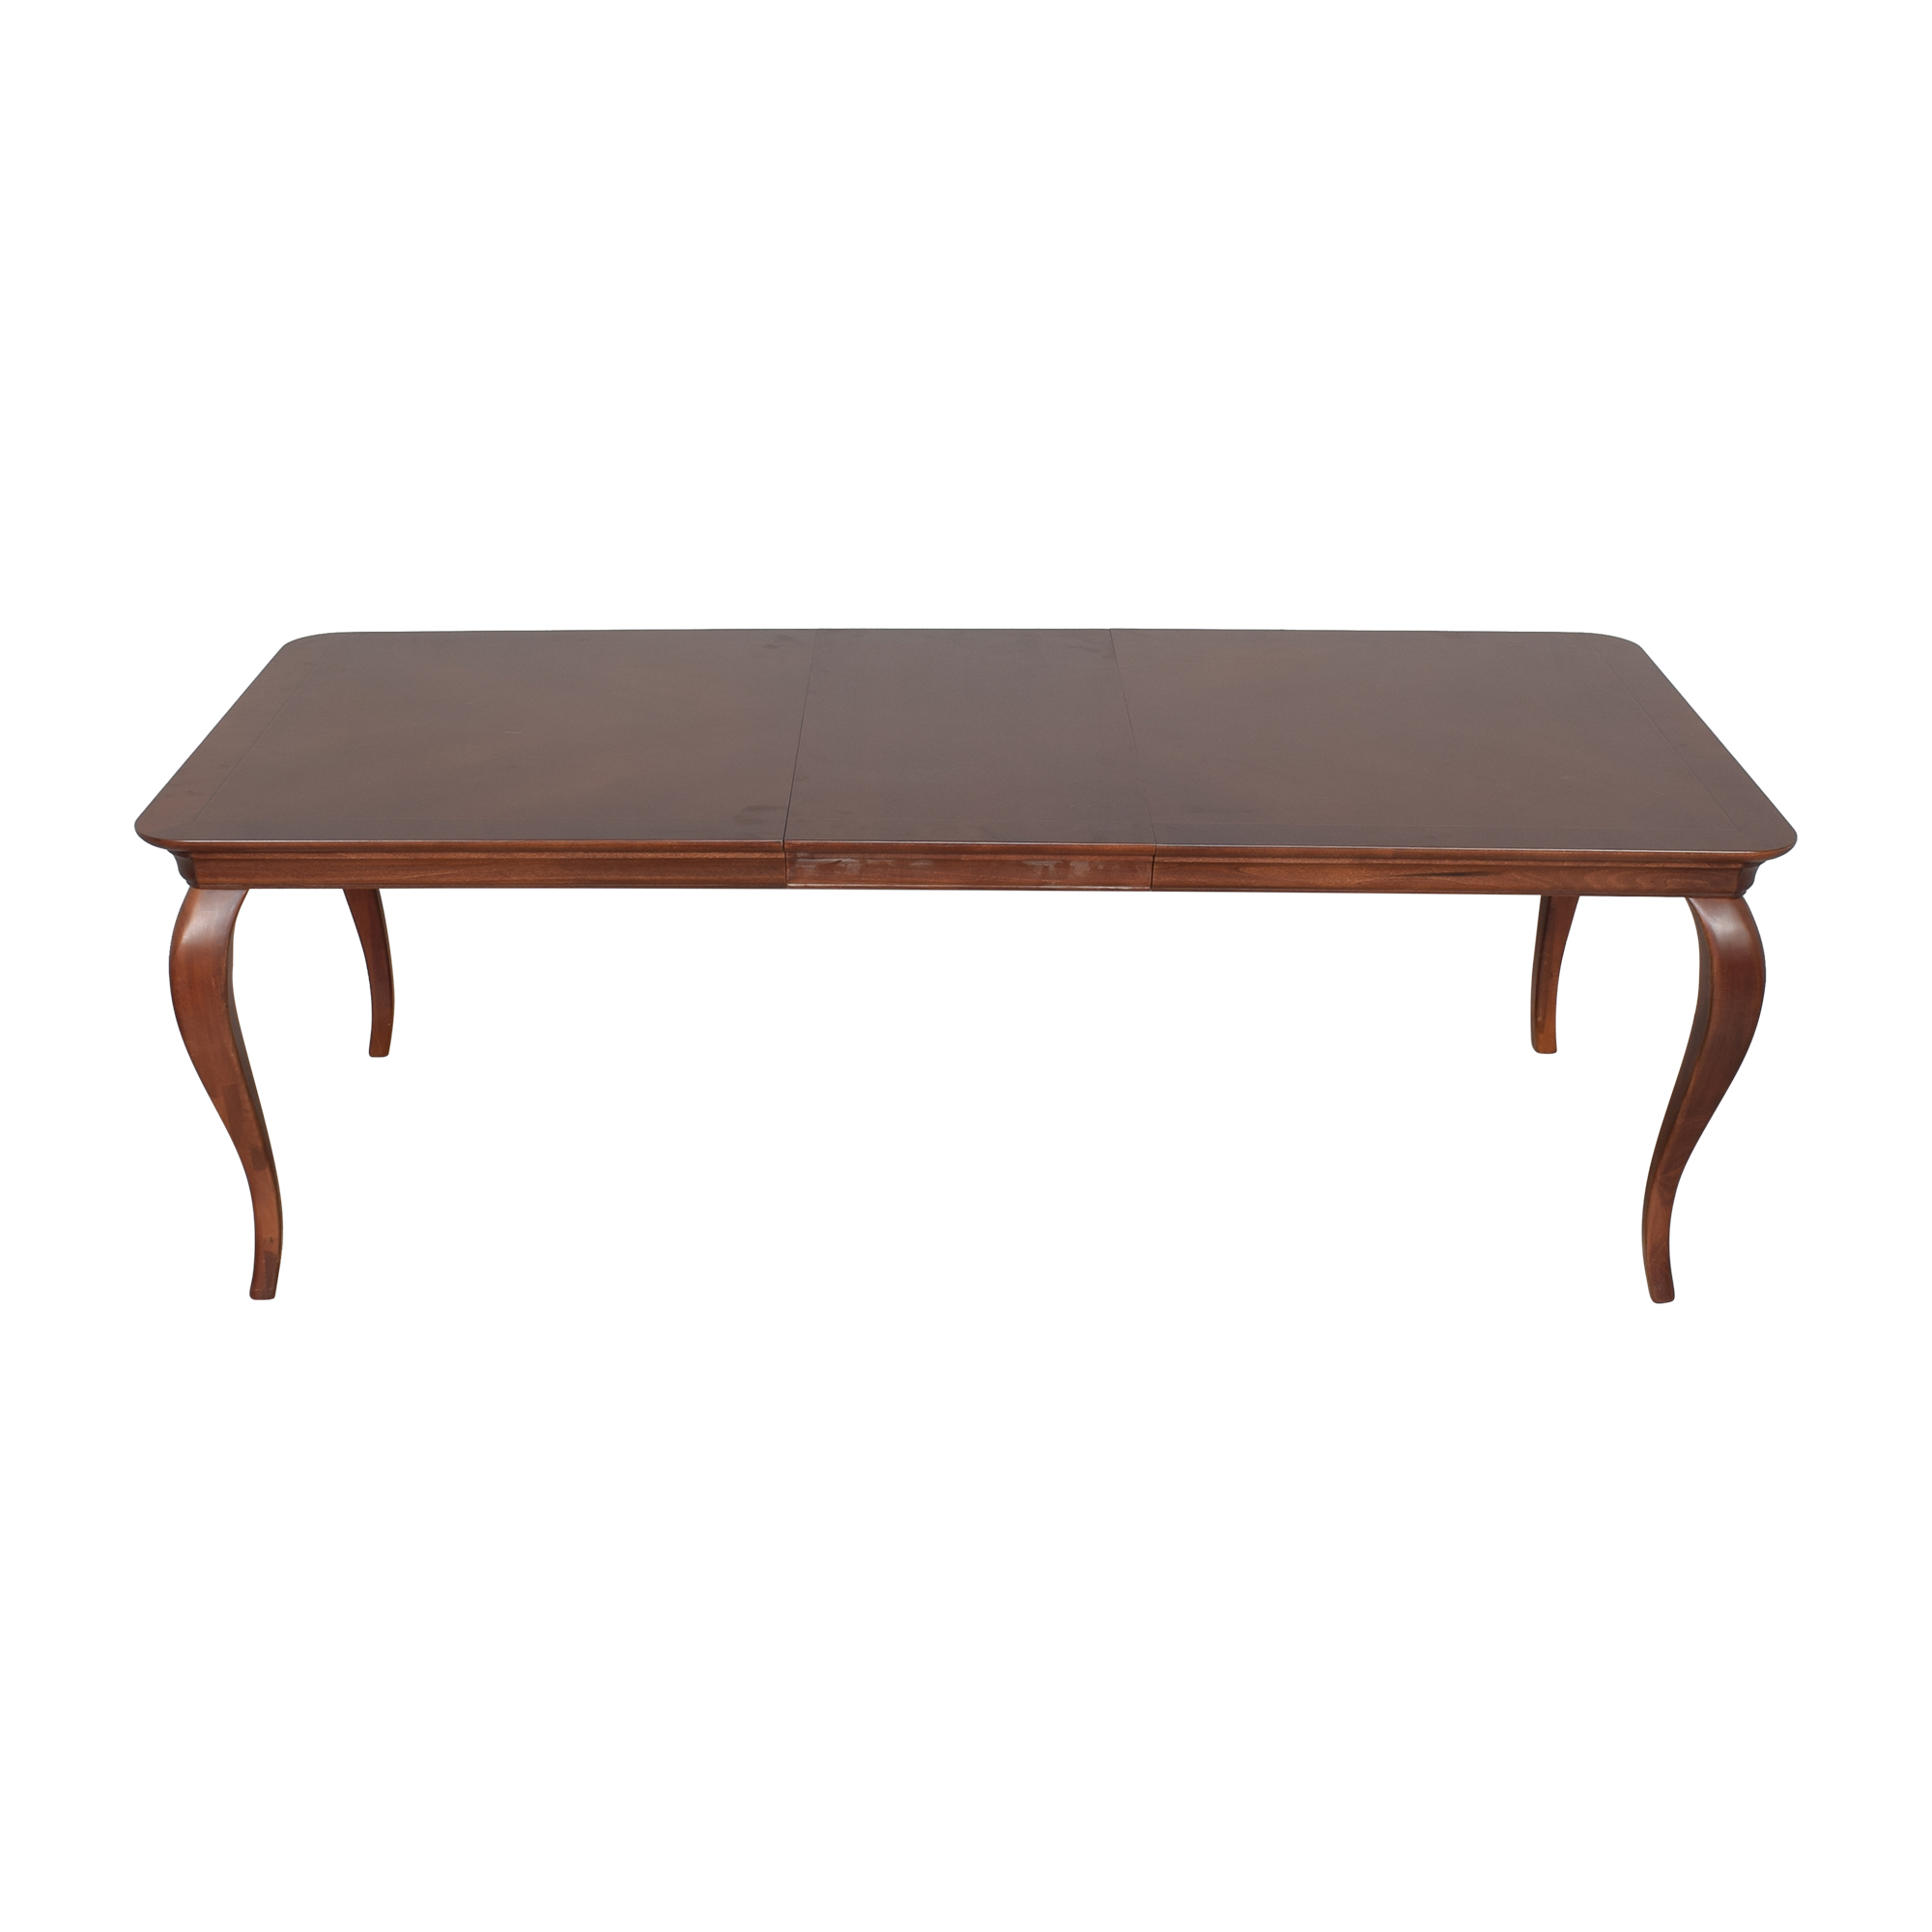 Thomasville Thomasville Extendable Cabriole Dining Table brown